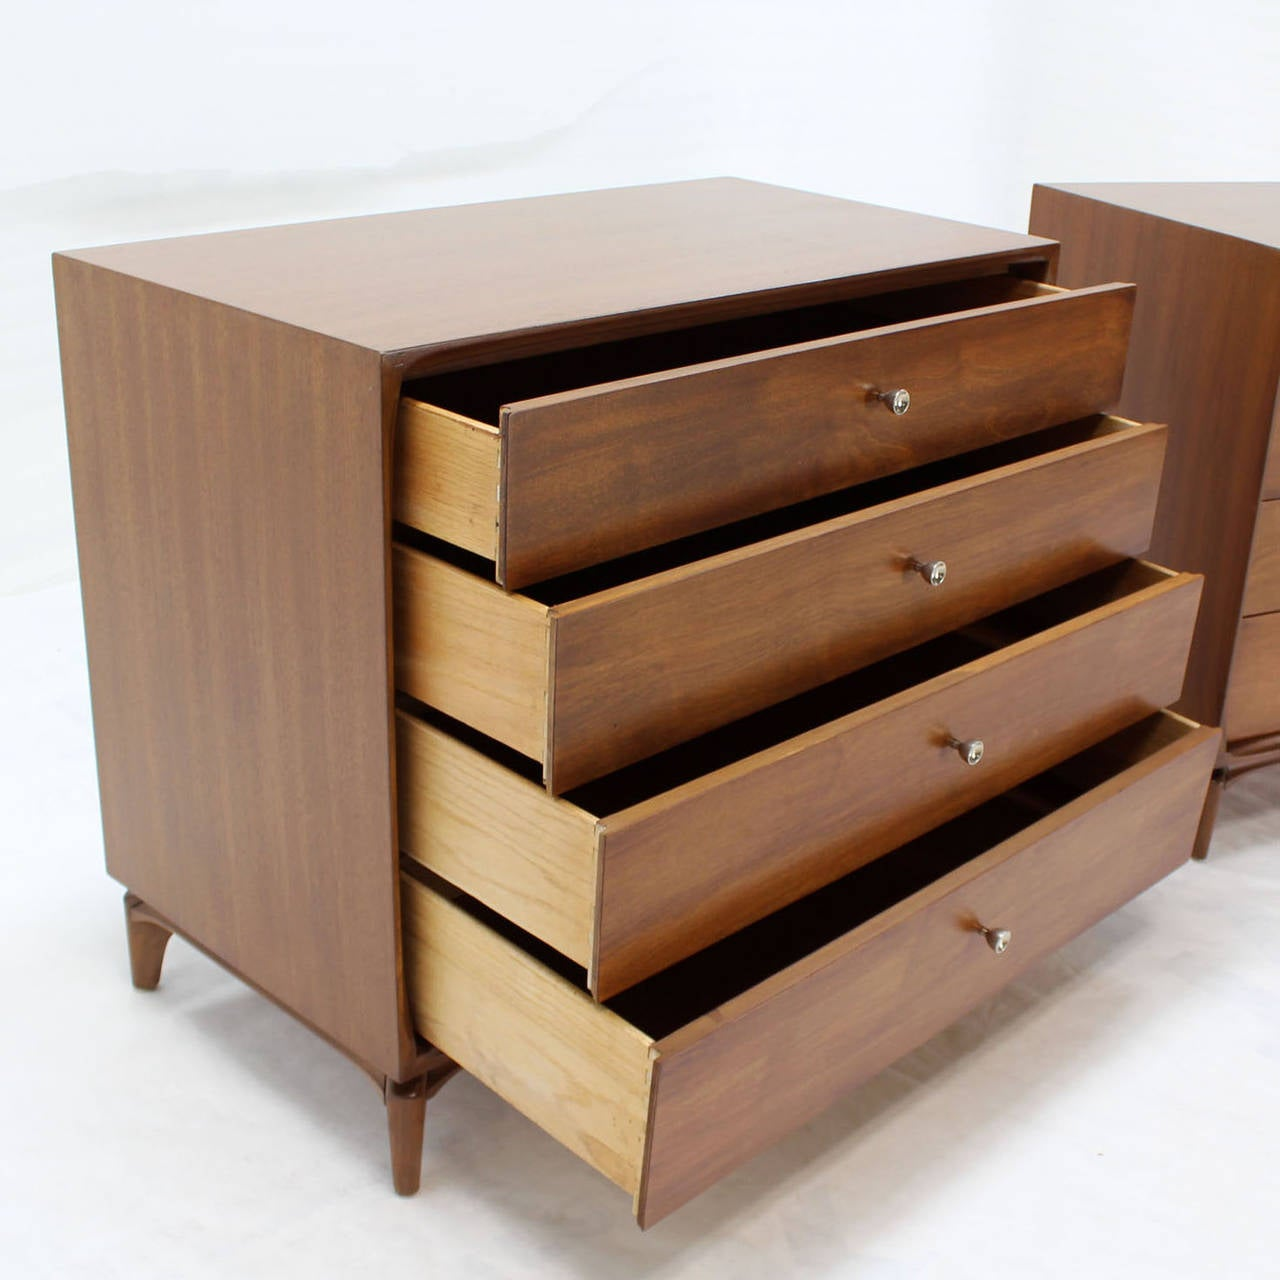 Pair of Mid-Century Modern Walnut 4 Drawer Bachelor Chests or Dressers In Excellent Condition For Sale In Blairstown, NJ